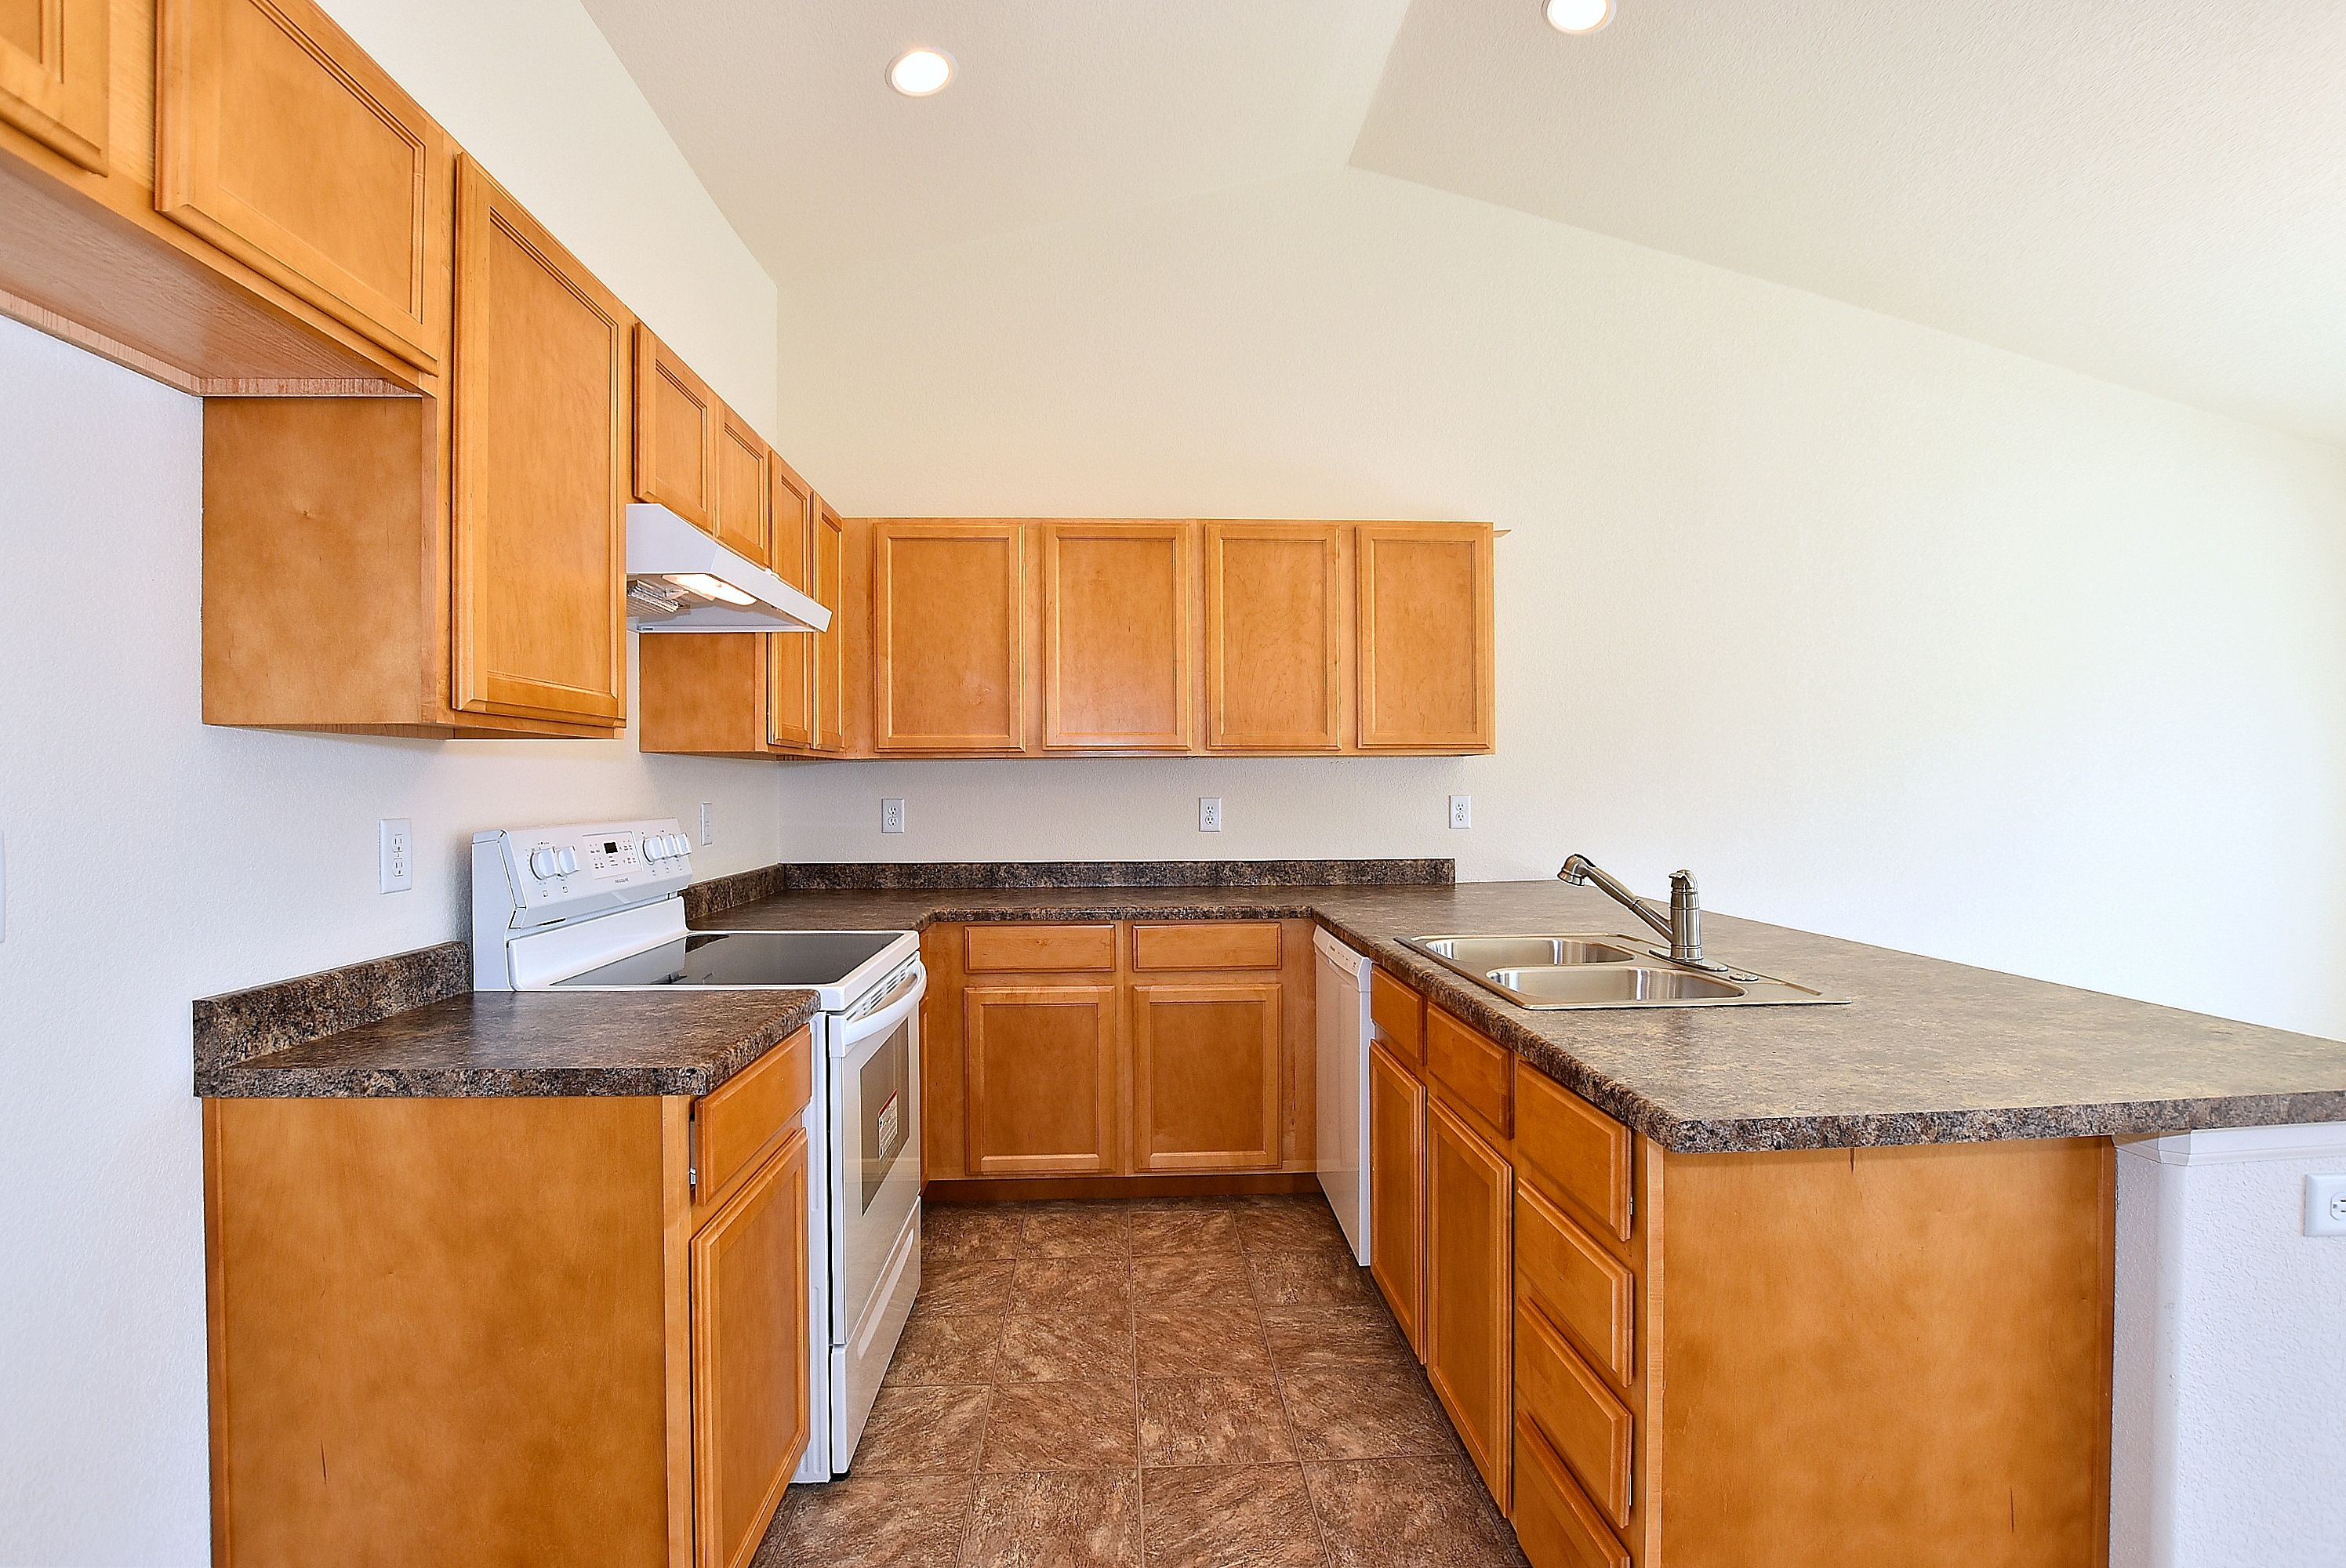 Kitchen featured in the Alaska By Journey Homes in Greeley, CO